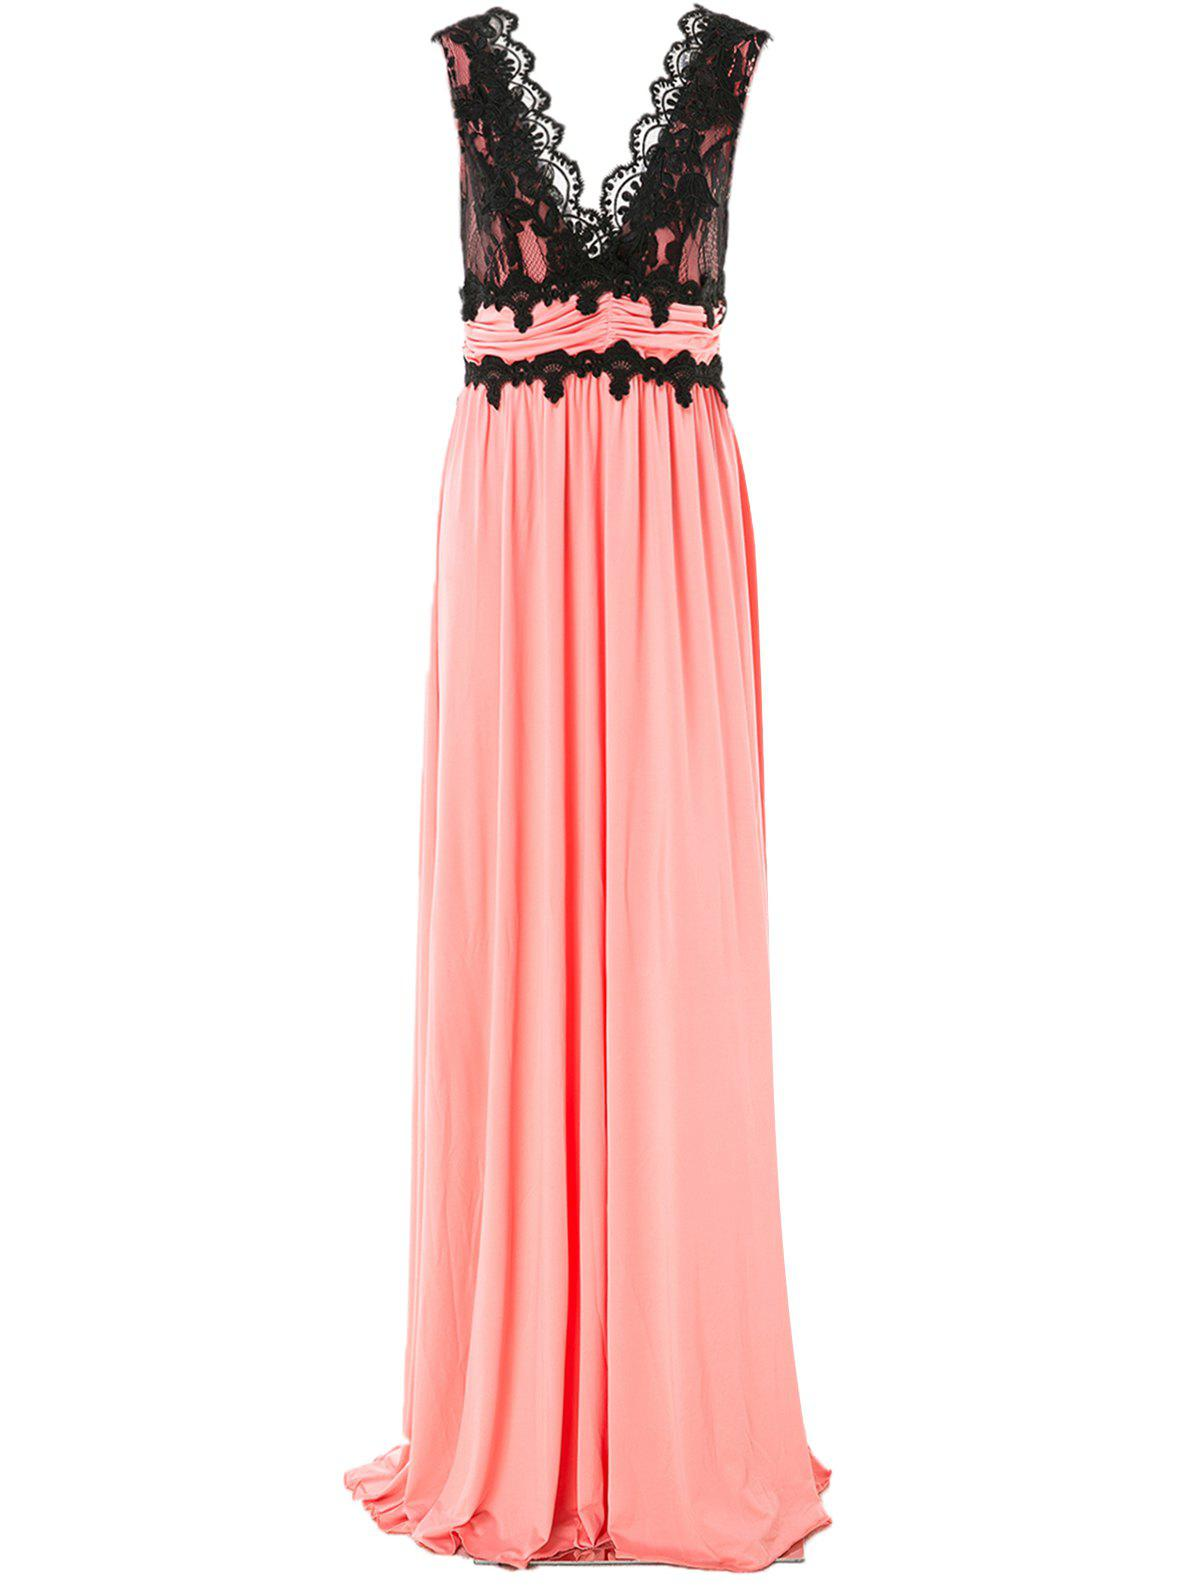 Hot Charming Women's Pluning Neck Sleeveless Lace Spliced Maxi Dress